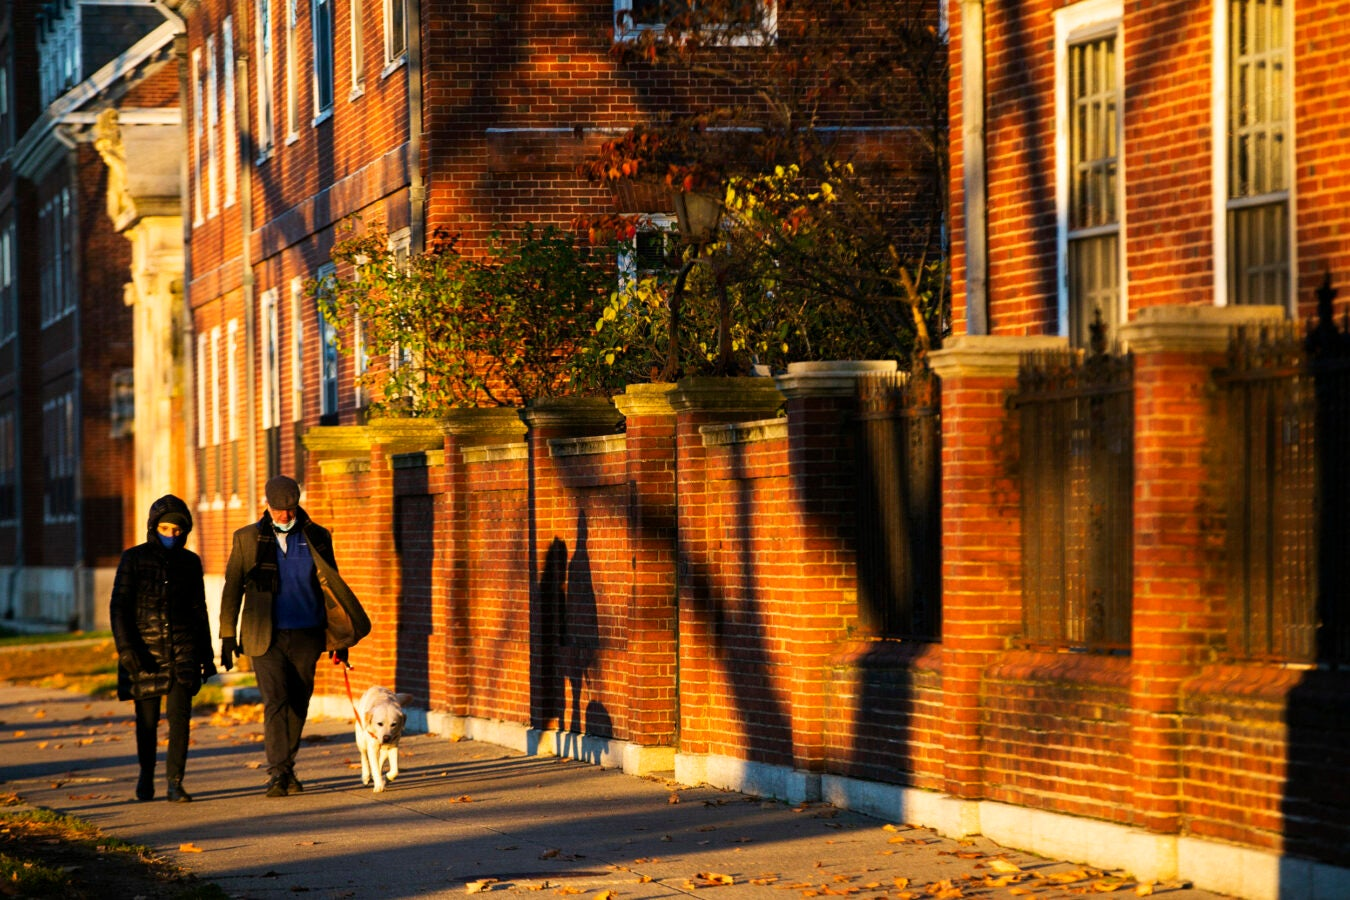 Walkers stroll past the River Houses with their dog.